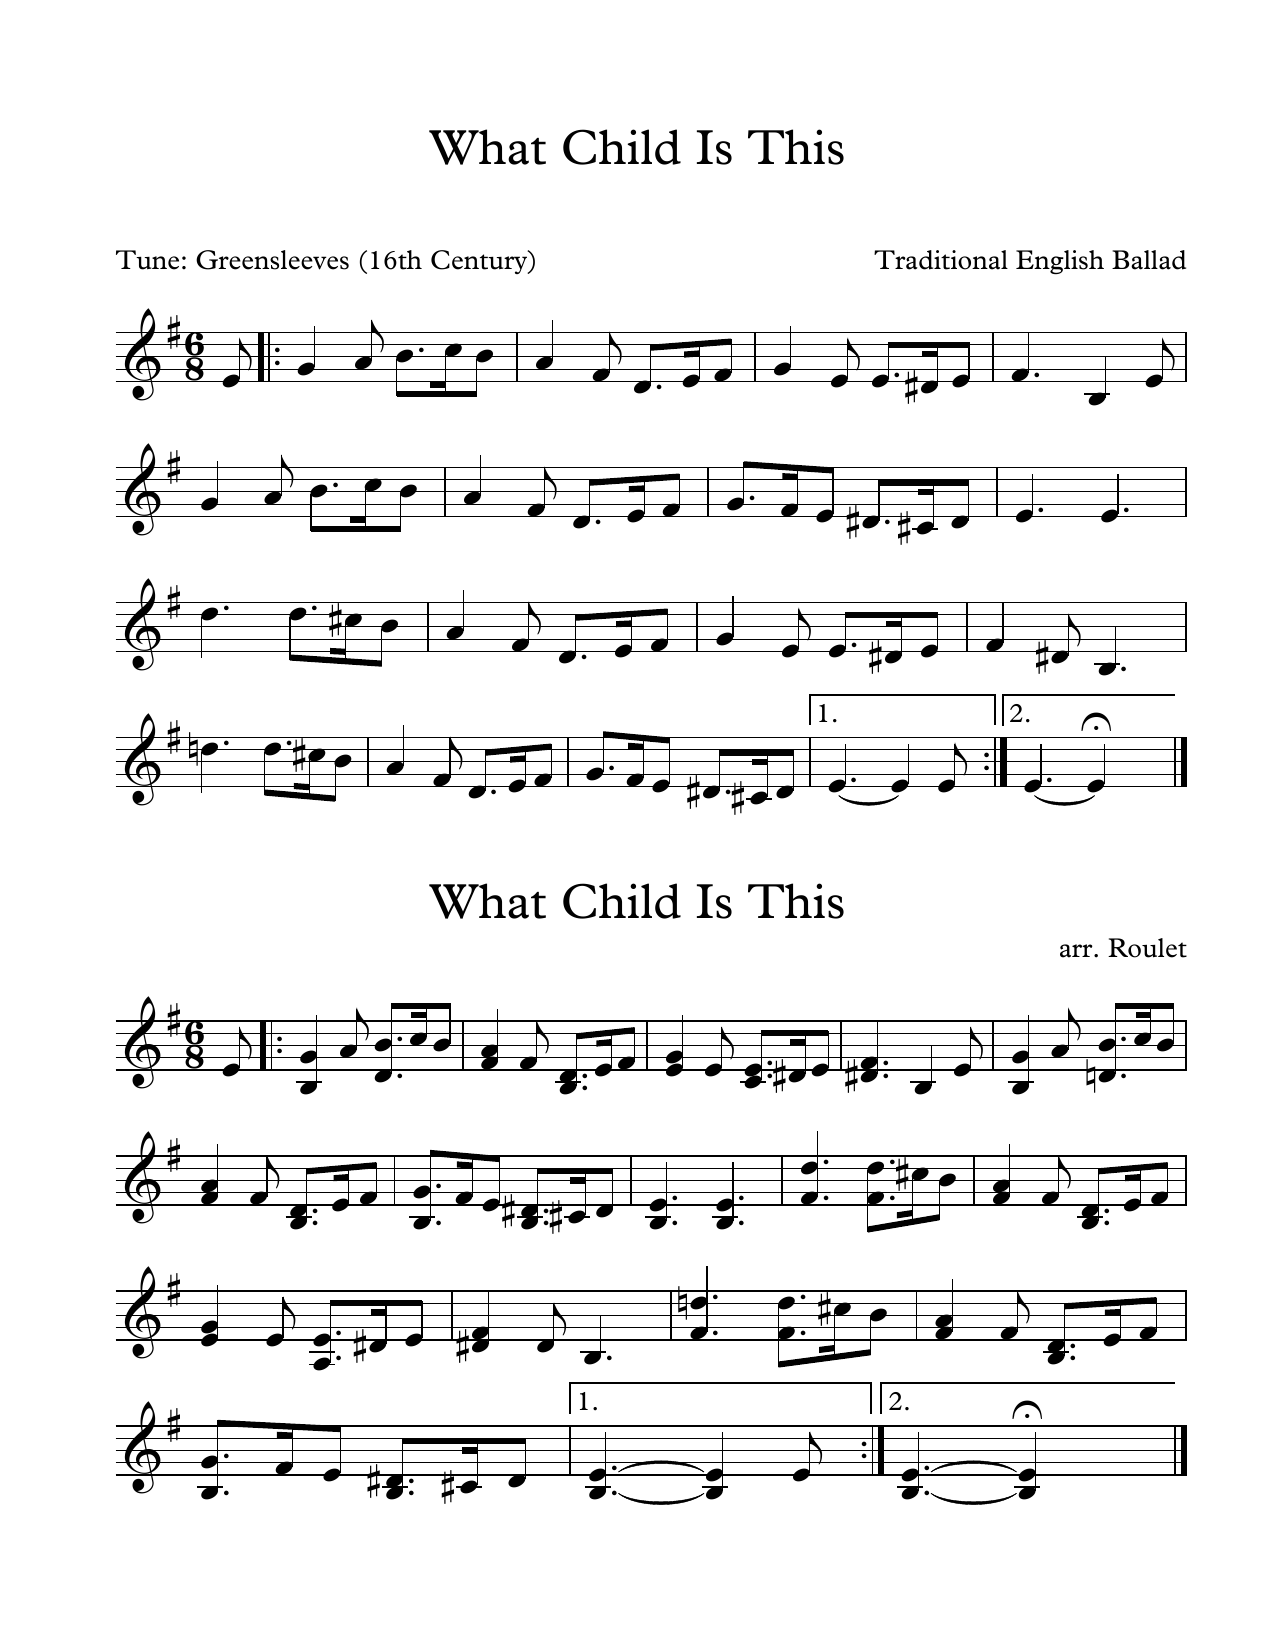 Traditional English Ballad What Child Is This (arr. Patrick Roulet) sheet music notes and chords. Download Printable PDF.